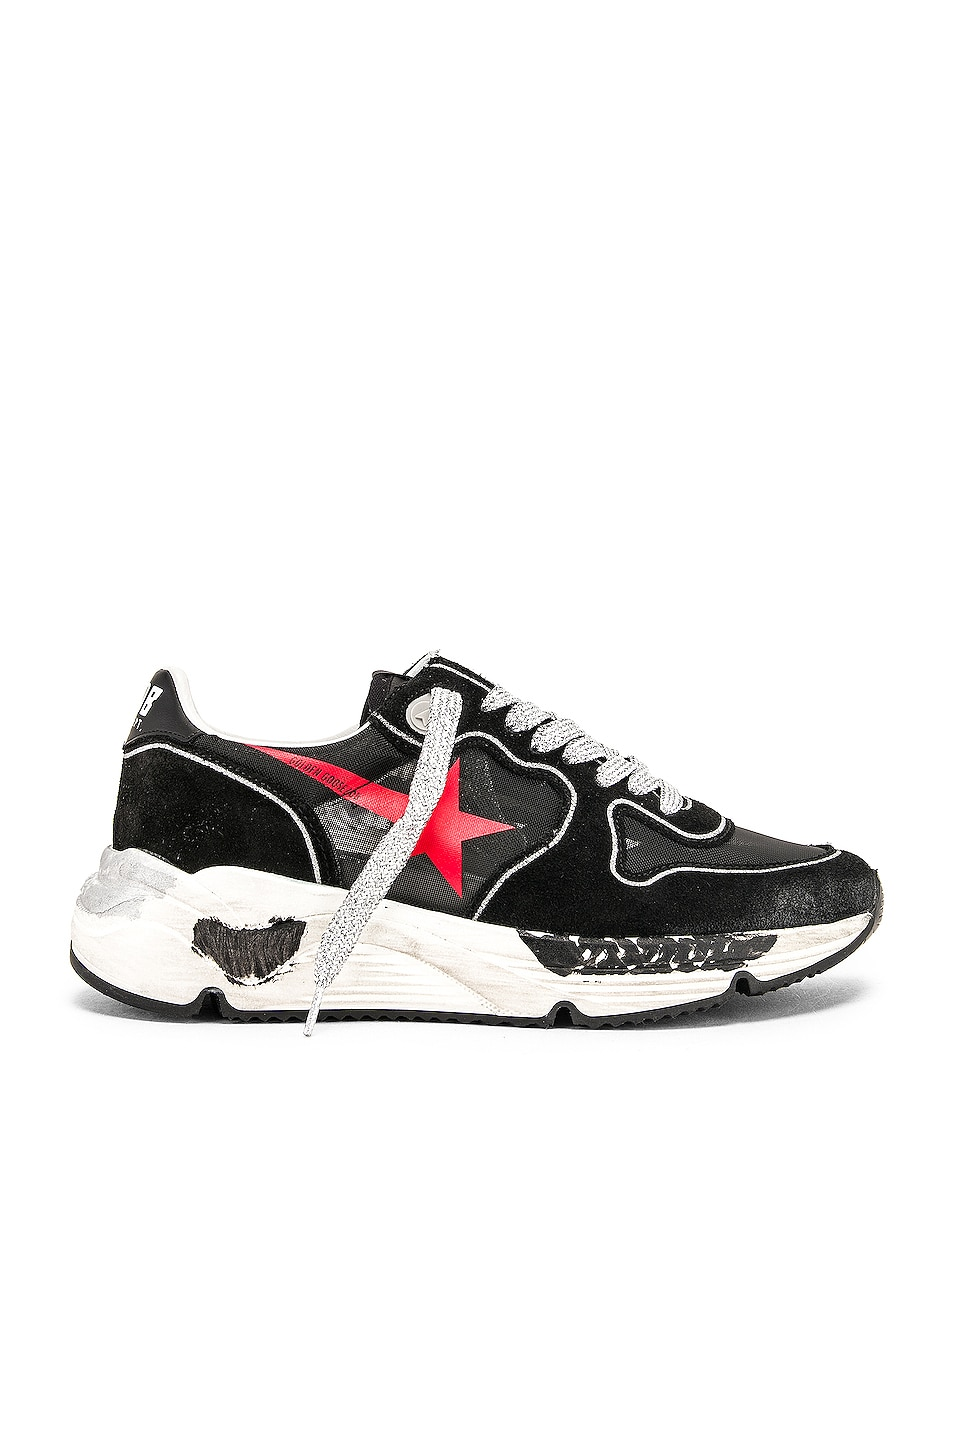 Image 1 of Golden Goose Running Sole Sneakers in Black & Red Star